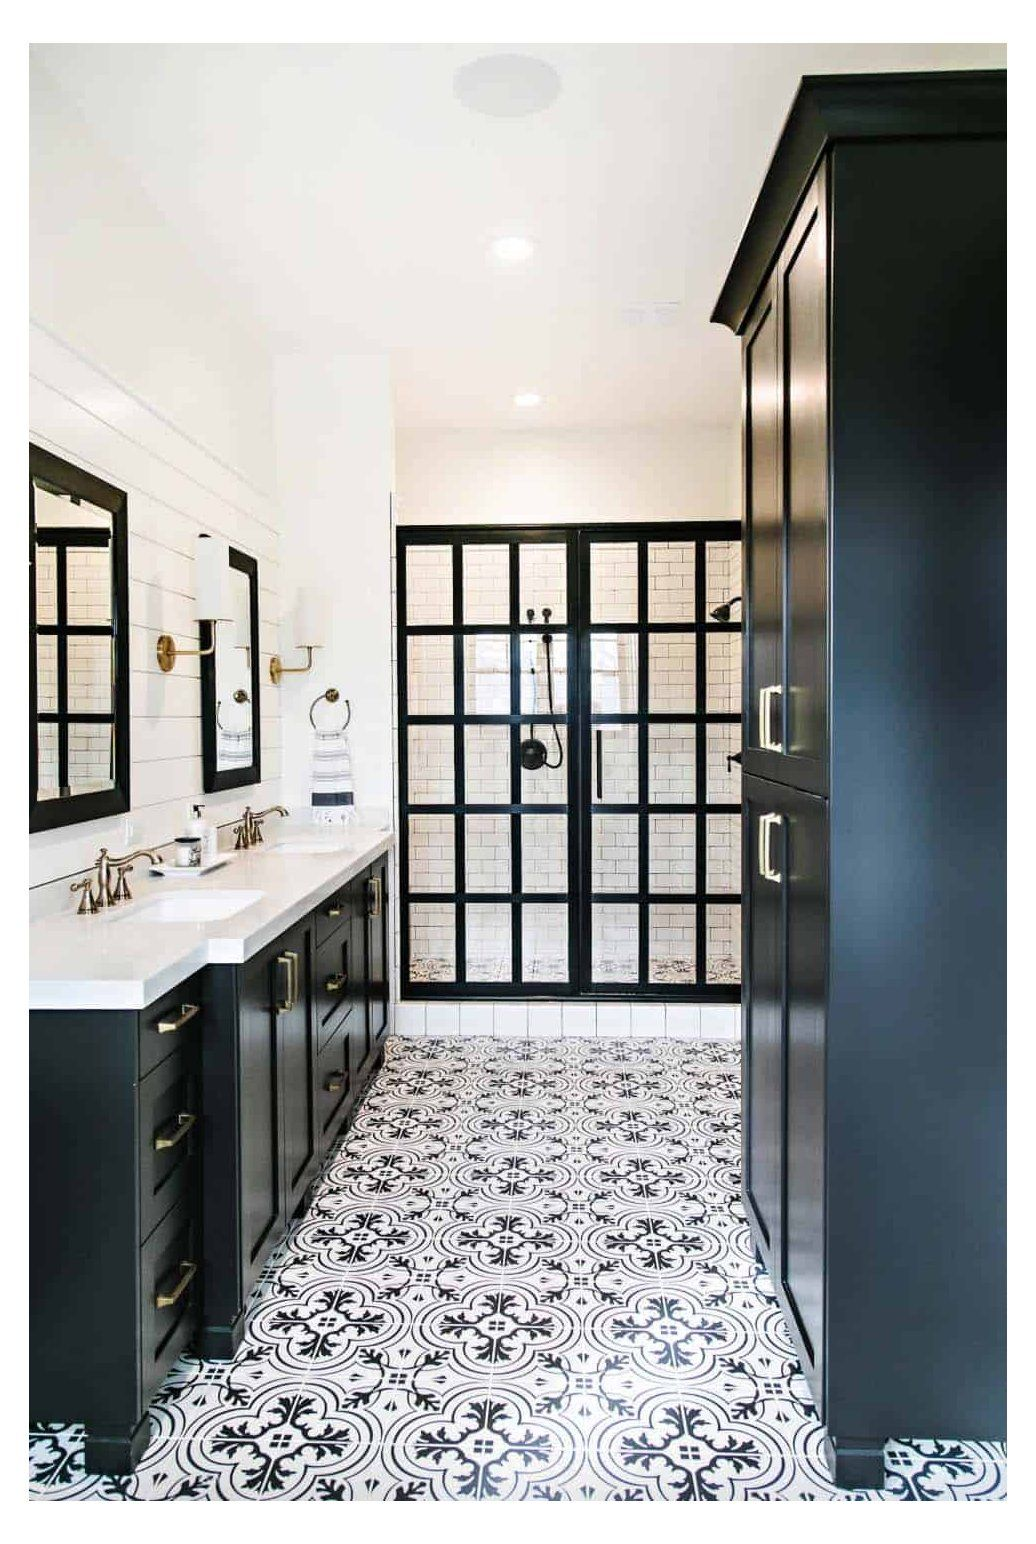 25 Incredibly Stylish Black And White Bathroom Ideas To Inspire Bathroomideas In 2020 Farmhouse Master Bathroom White Bathroom Black White Bathrooms